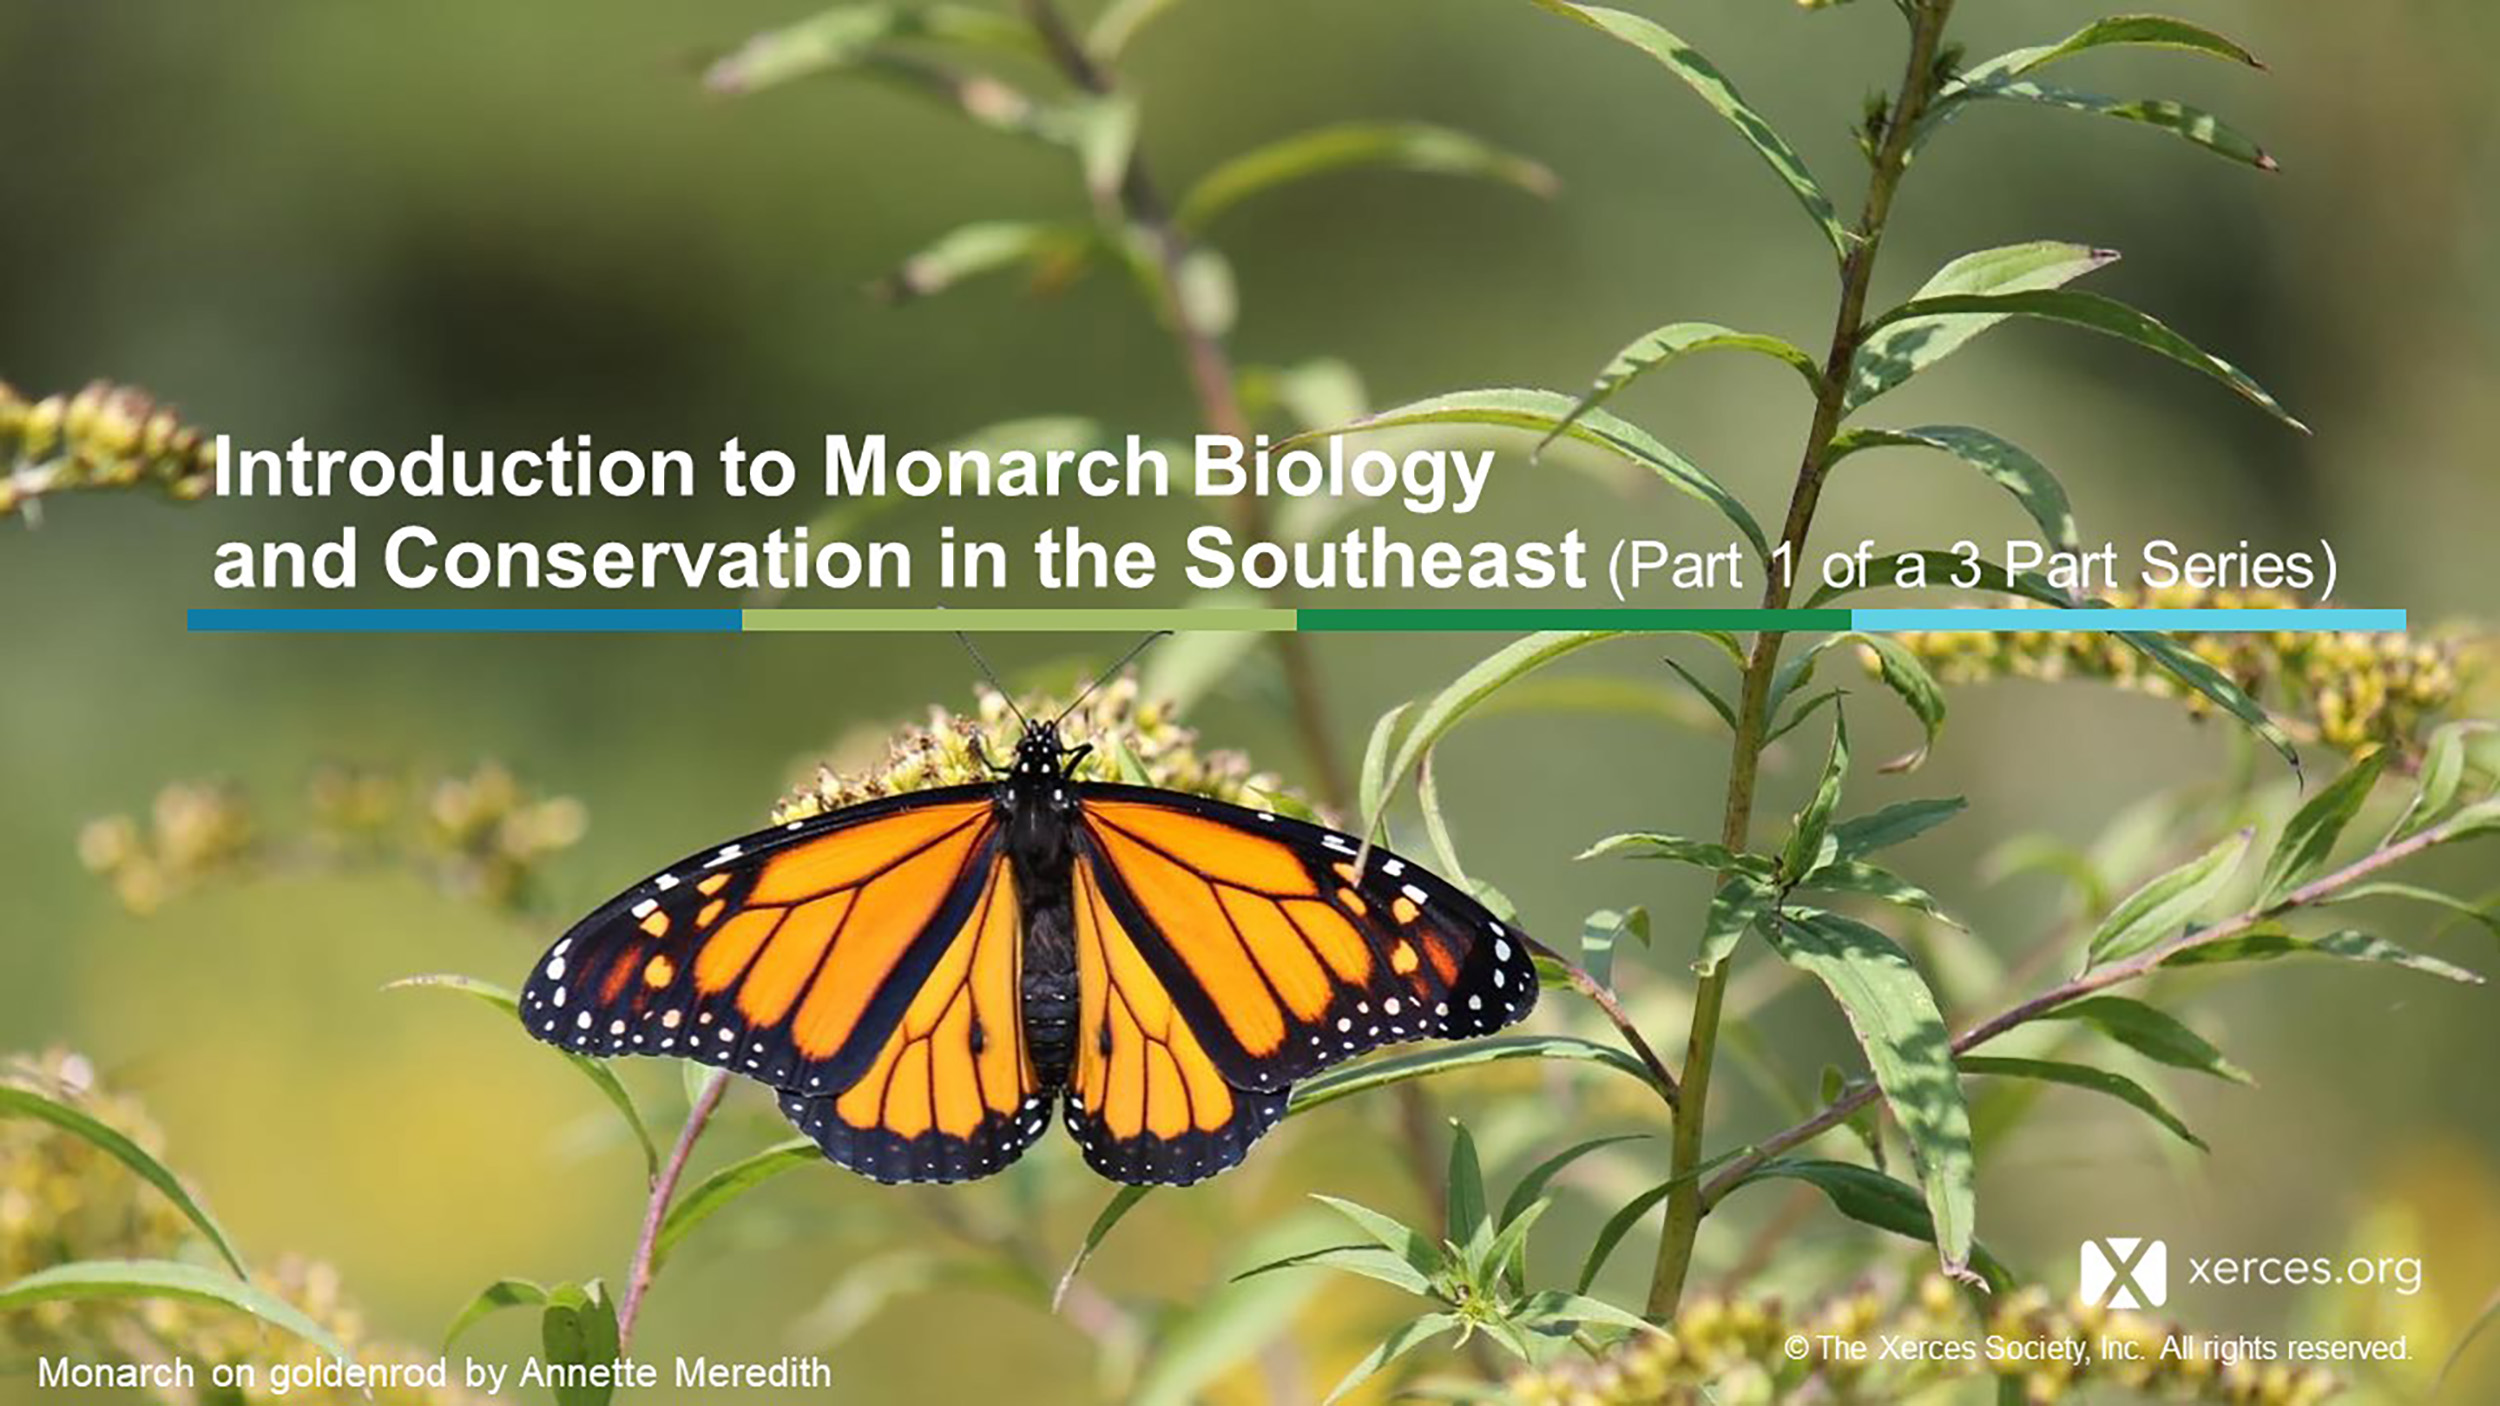 This image shows the first slide from a presentation. The slide has text and a photo of a black-and-orange monarch butterfly